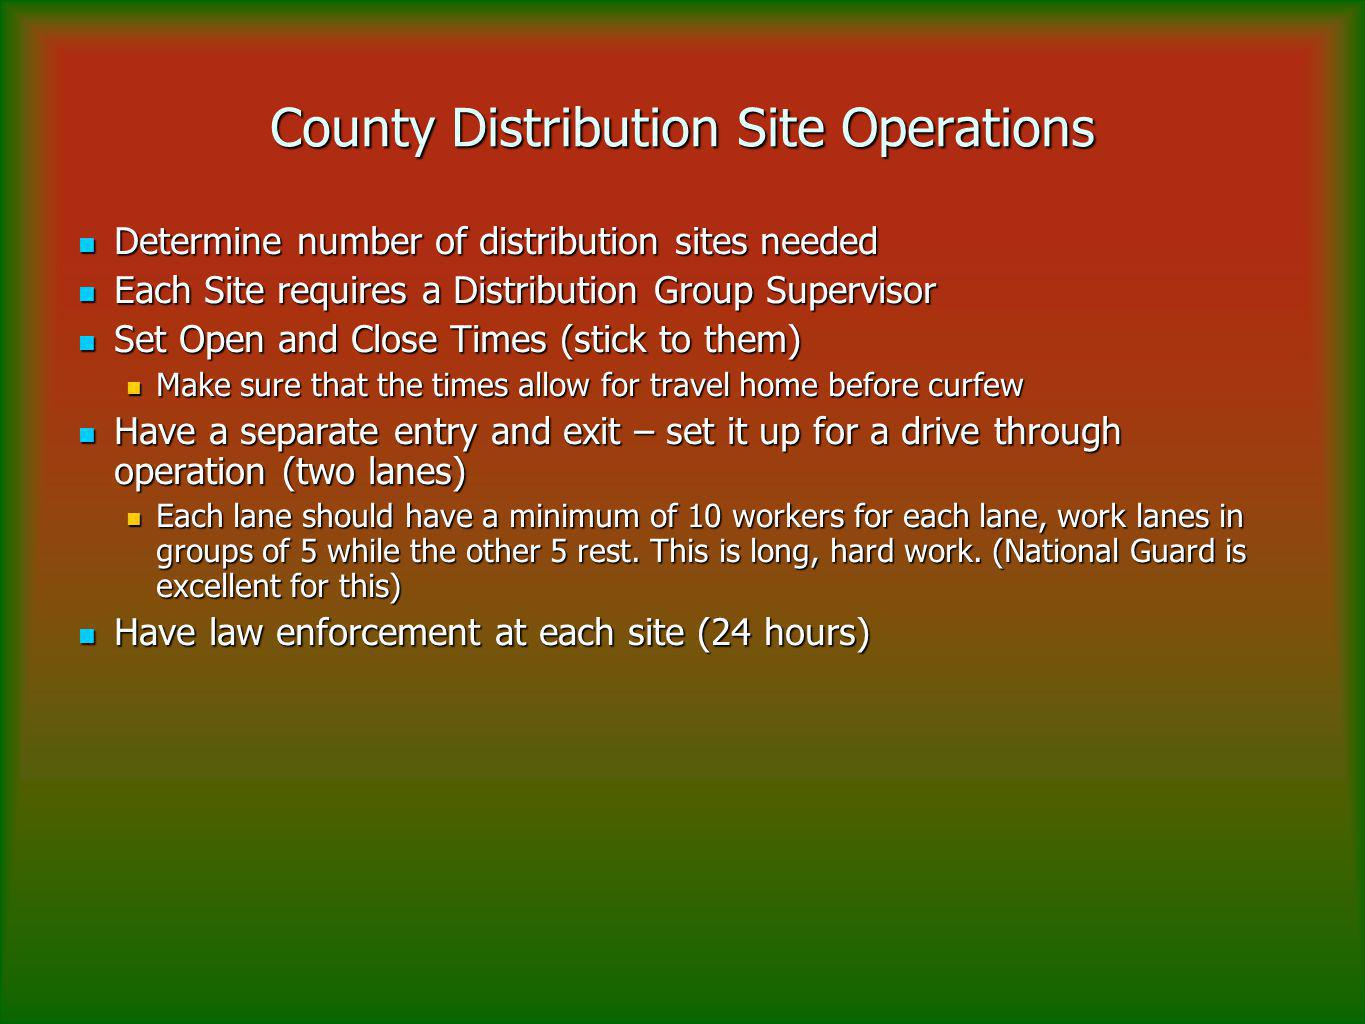 County Distribution Site Operations Determine number of distribution sites needed Determine number of distribution sites needed Each Site requires a Distribution Group Supervisor Each Site requires a Distribution Group Supervisor Set Open and Close Times (stick to them) Set Open and Close Times (stick to them) Make sure that the times allow for travel home before curfew Make sure that the times allow for travel home before curfew Have a separate entry and exit – set it up for a drive through operation (two lanes) Have a separate entry and exit – set it up for a drive through operation (two lanes) Each lane should have a minimum of 10 workers for each lane, work lanes in groups of 5 while the other 5 rest.